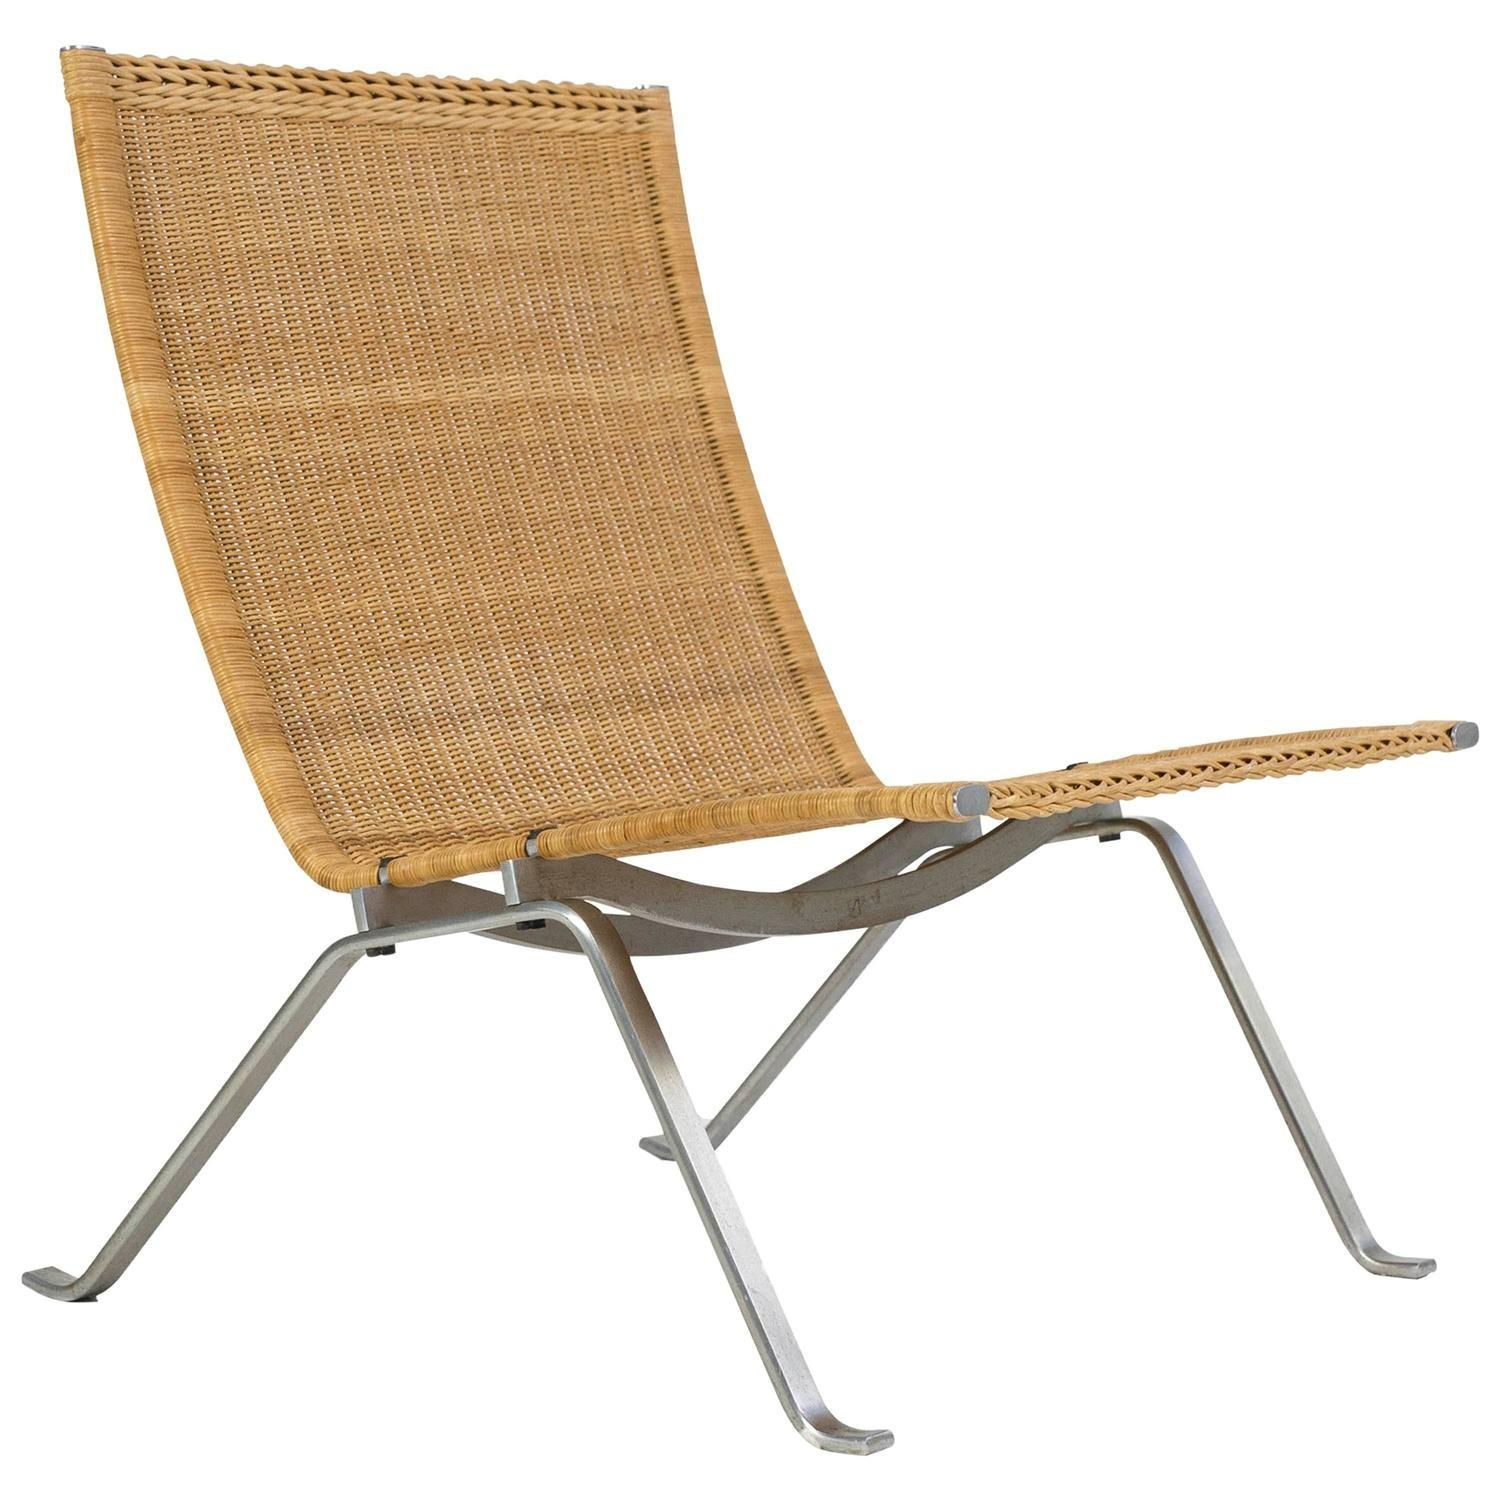 Poul Rholm Pk22 Wicker Chair Kold Christensen